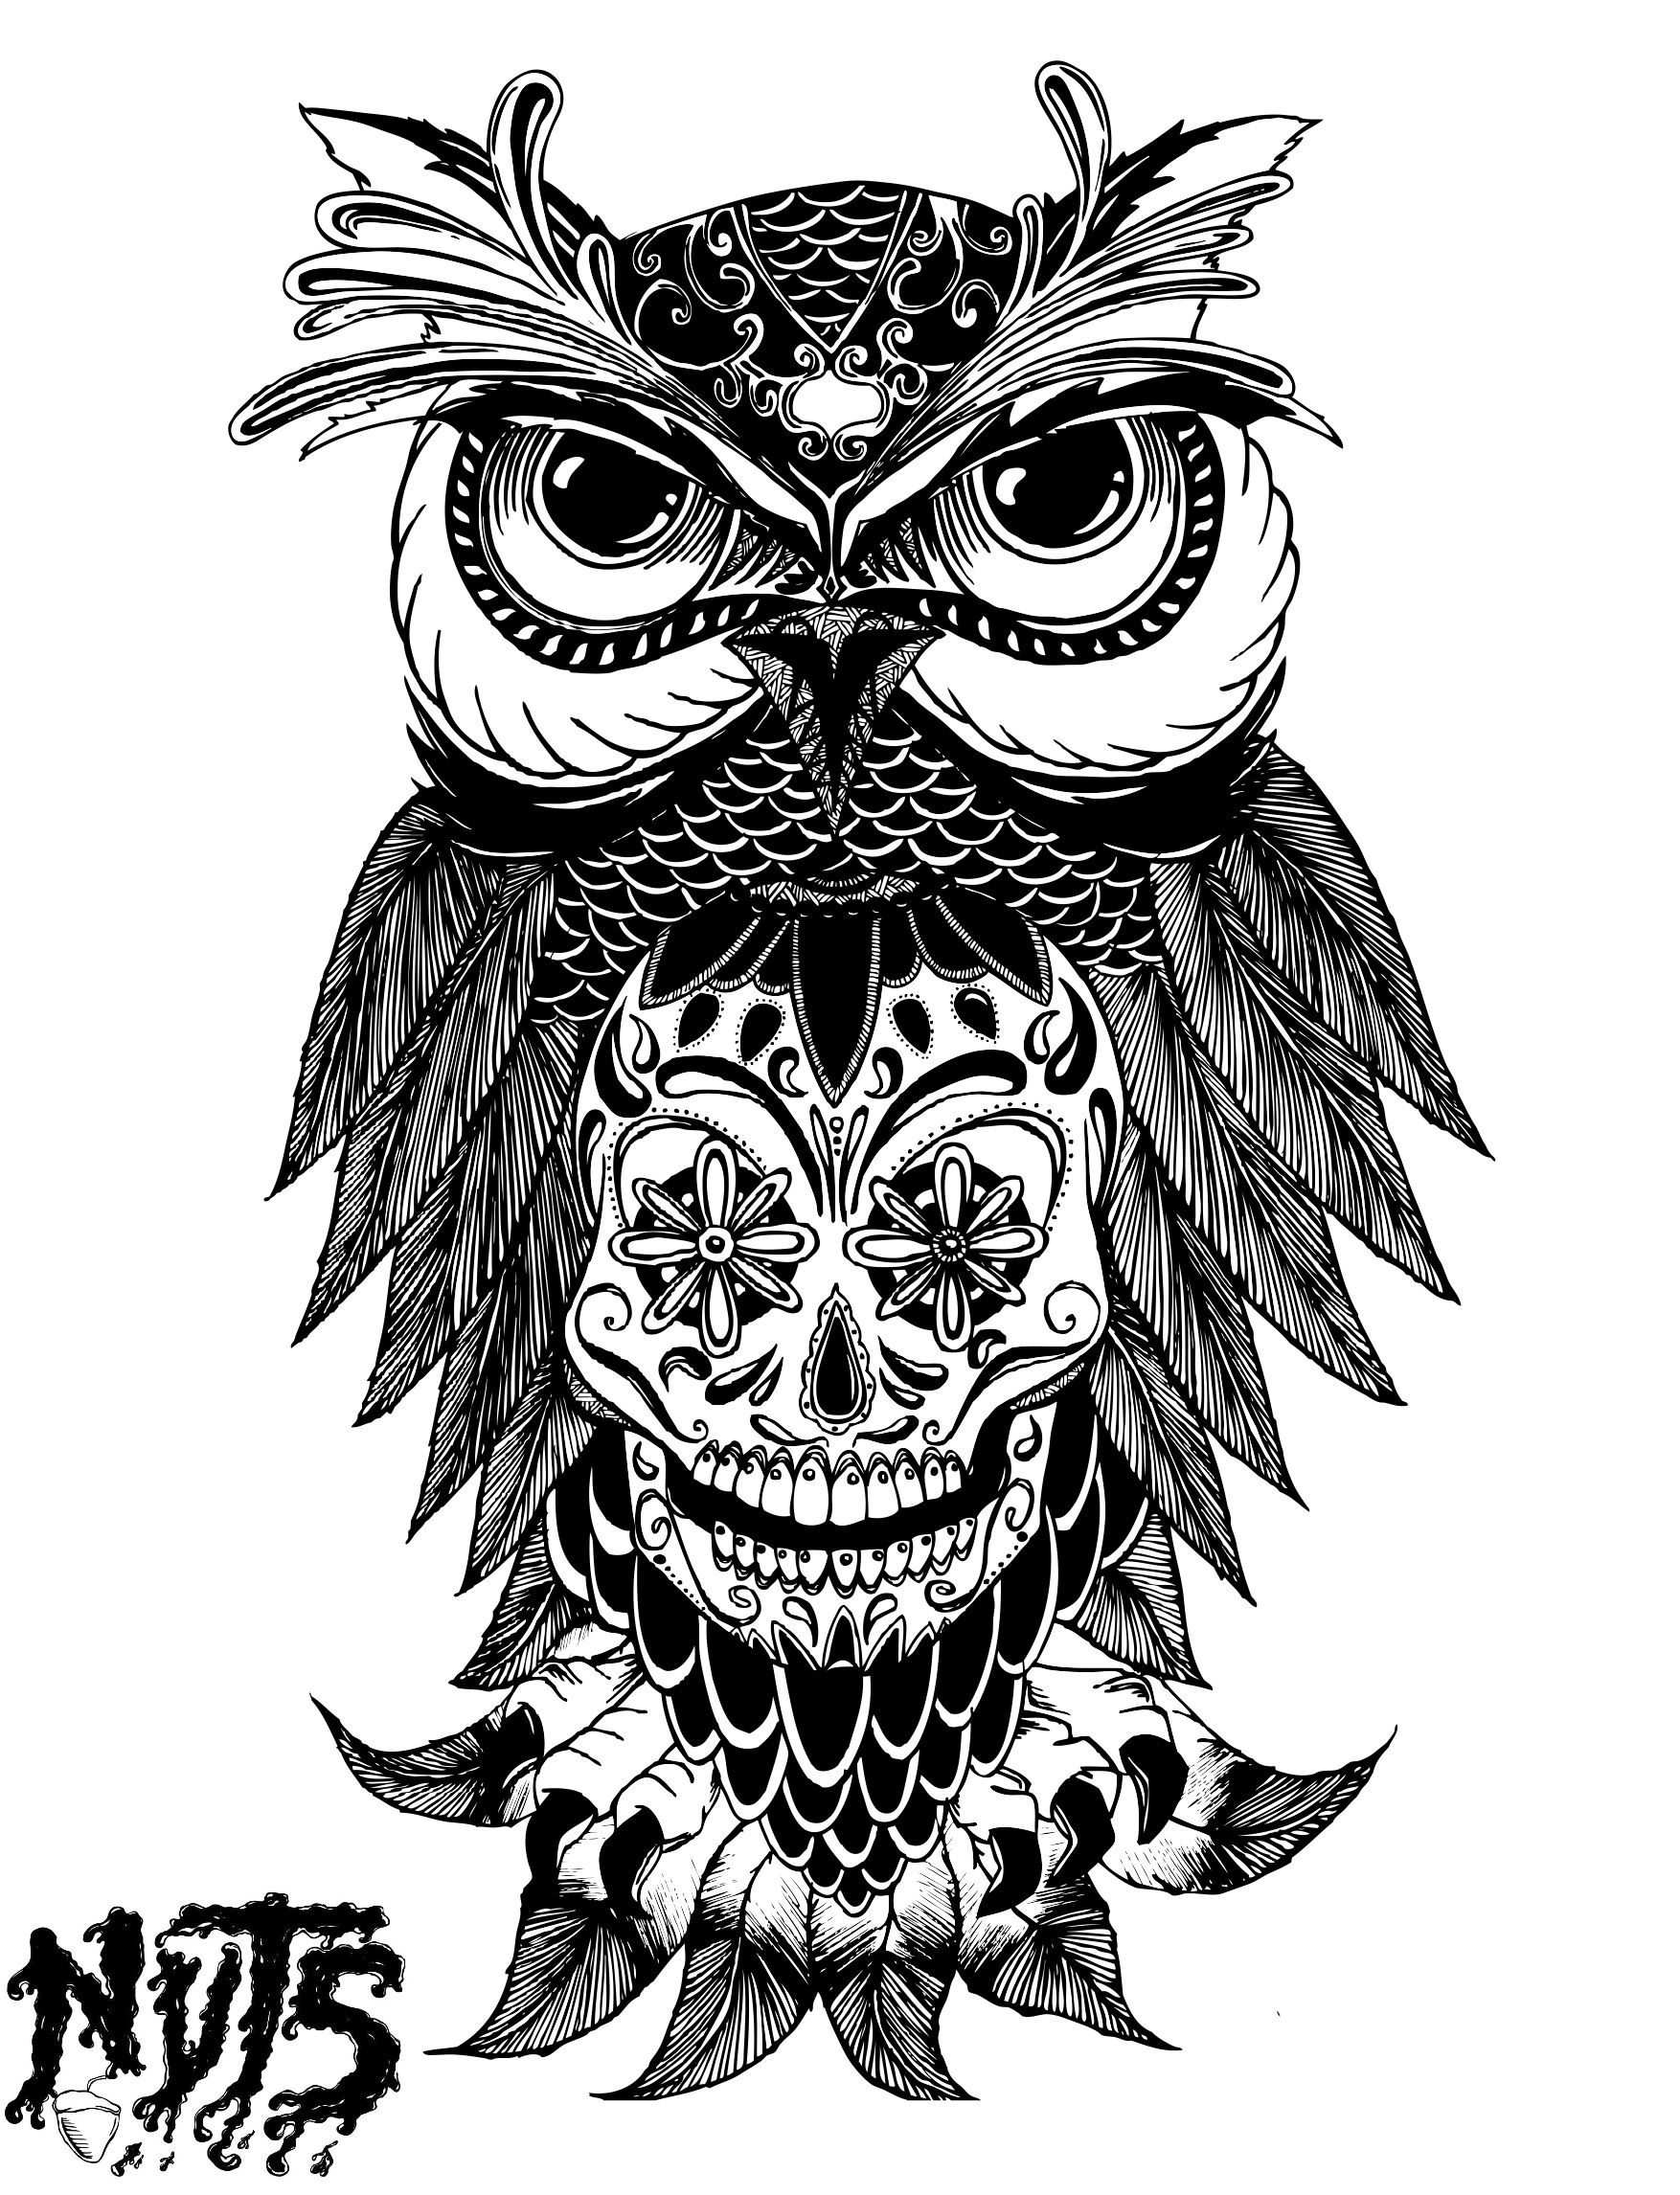 NUTS OWL MEXICAN SKULL | NUTS creation | Pinterest ... - photo#11